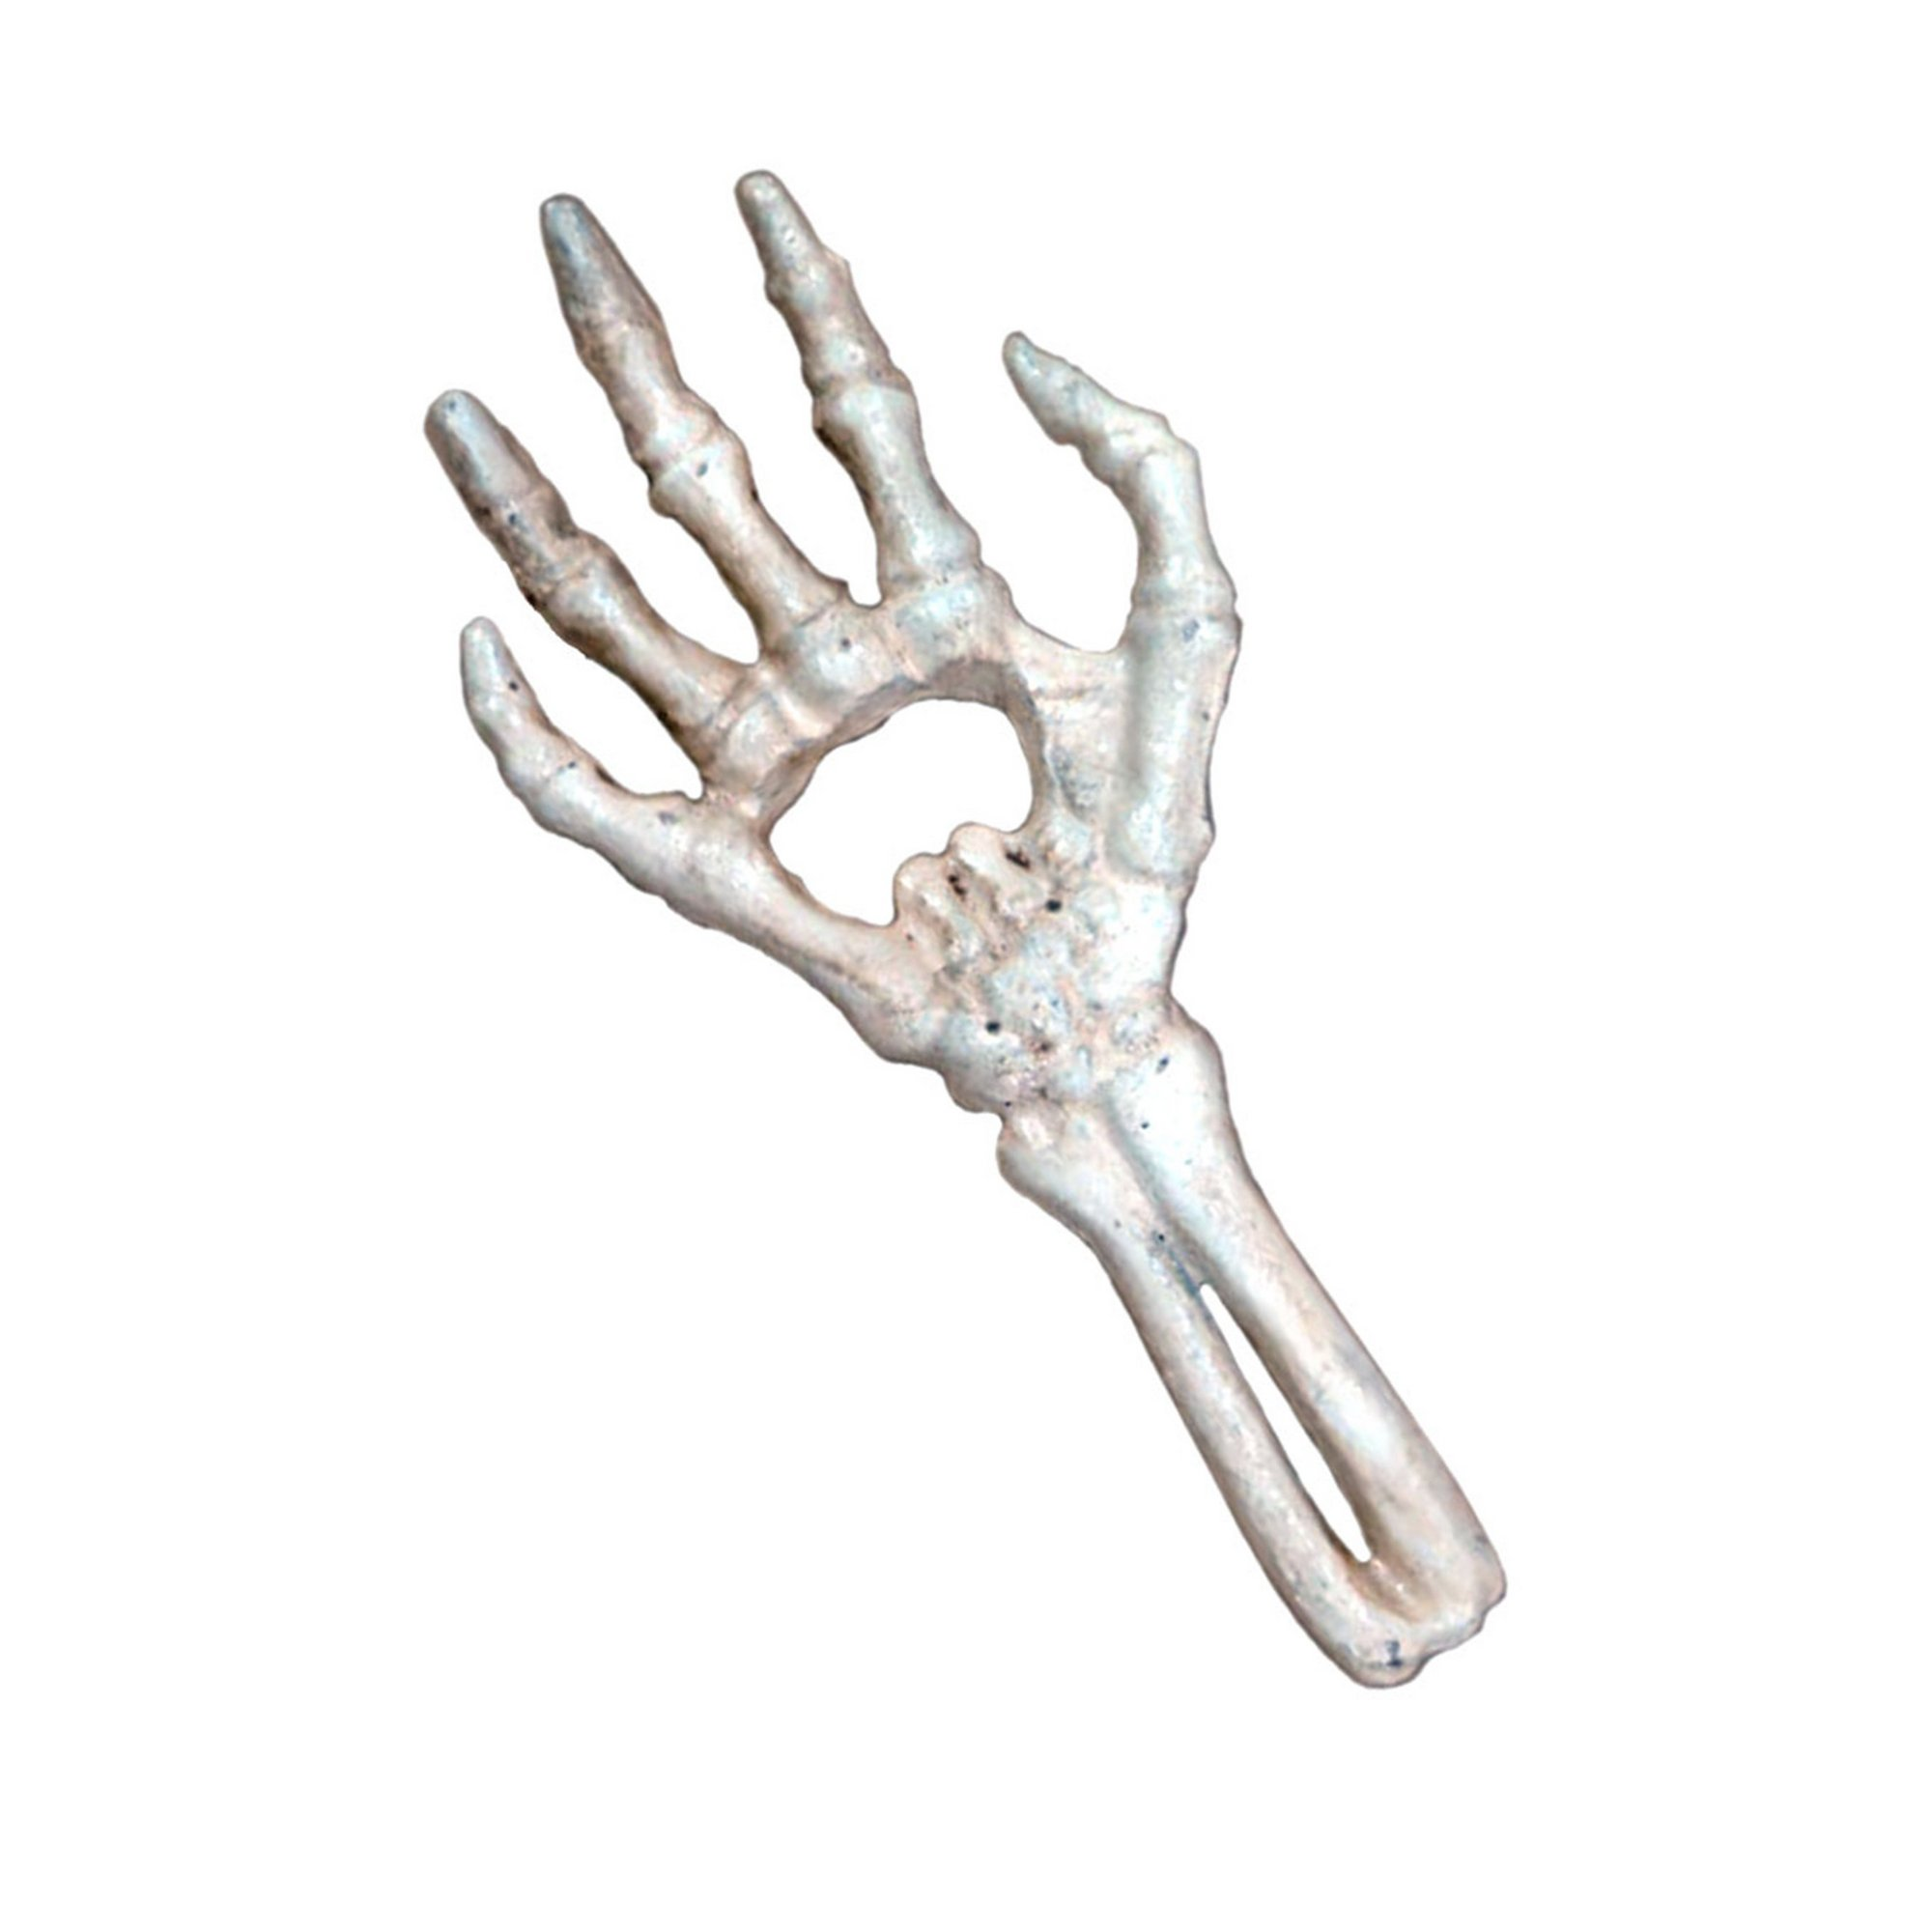 Image of Skeletal Hand Bottle Opener